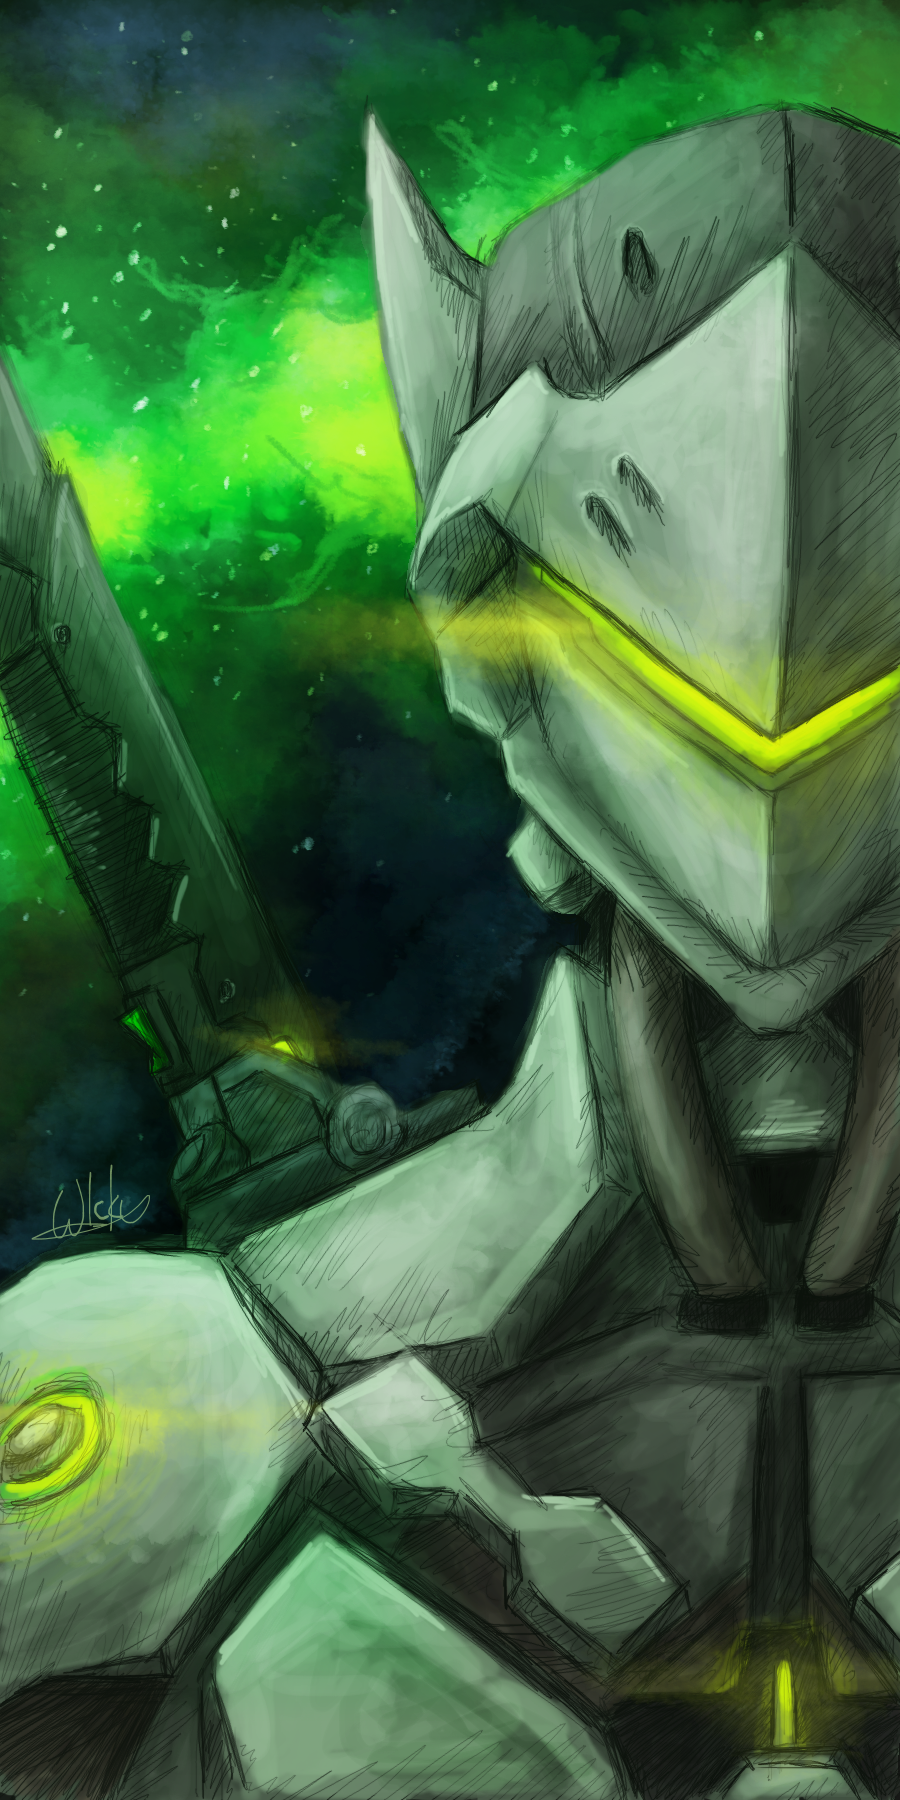 Mada Mada In 2020 Overwatch Wallpapers Overwatch Genji Overwatch Drawings It's almost always better to damage boost the genji because the kill gives him a dash reset to escape with his low health. overwatch wallpapers overwatch genji